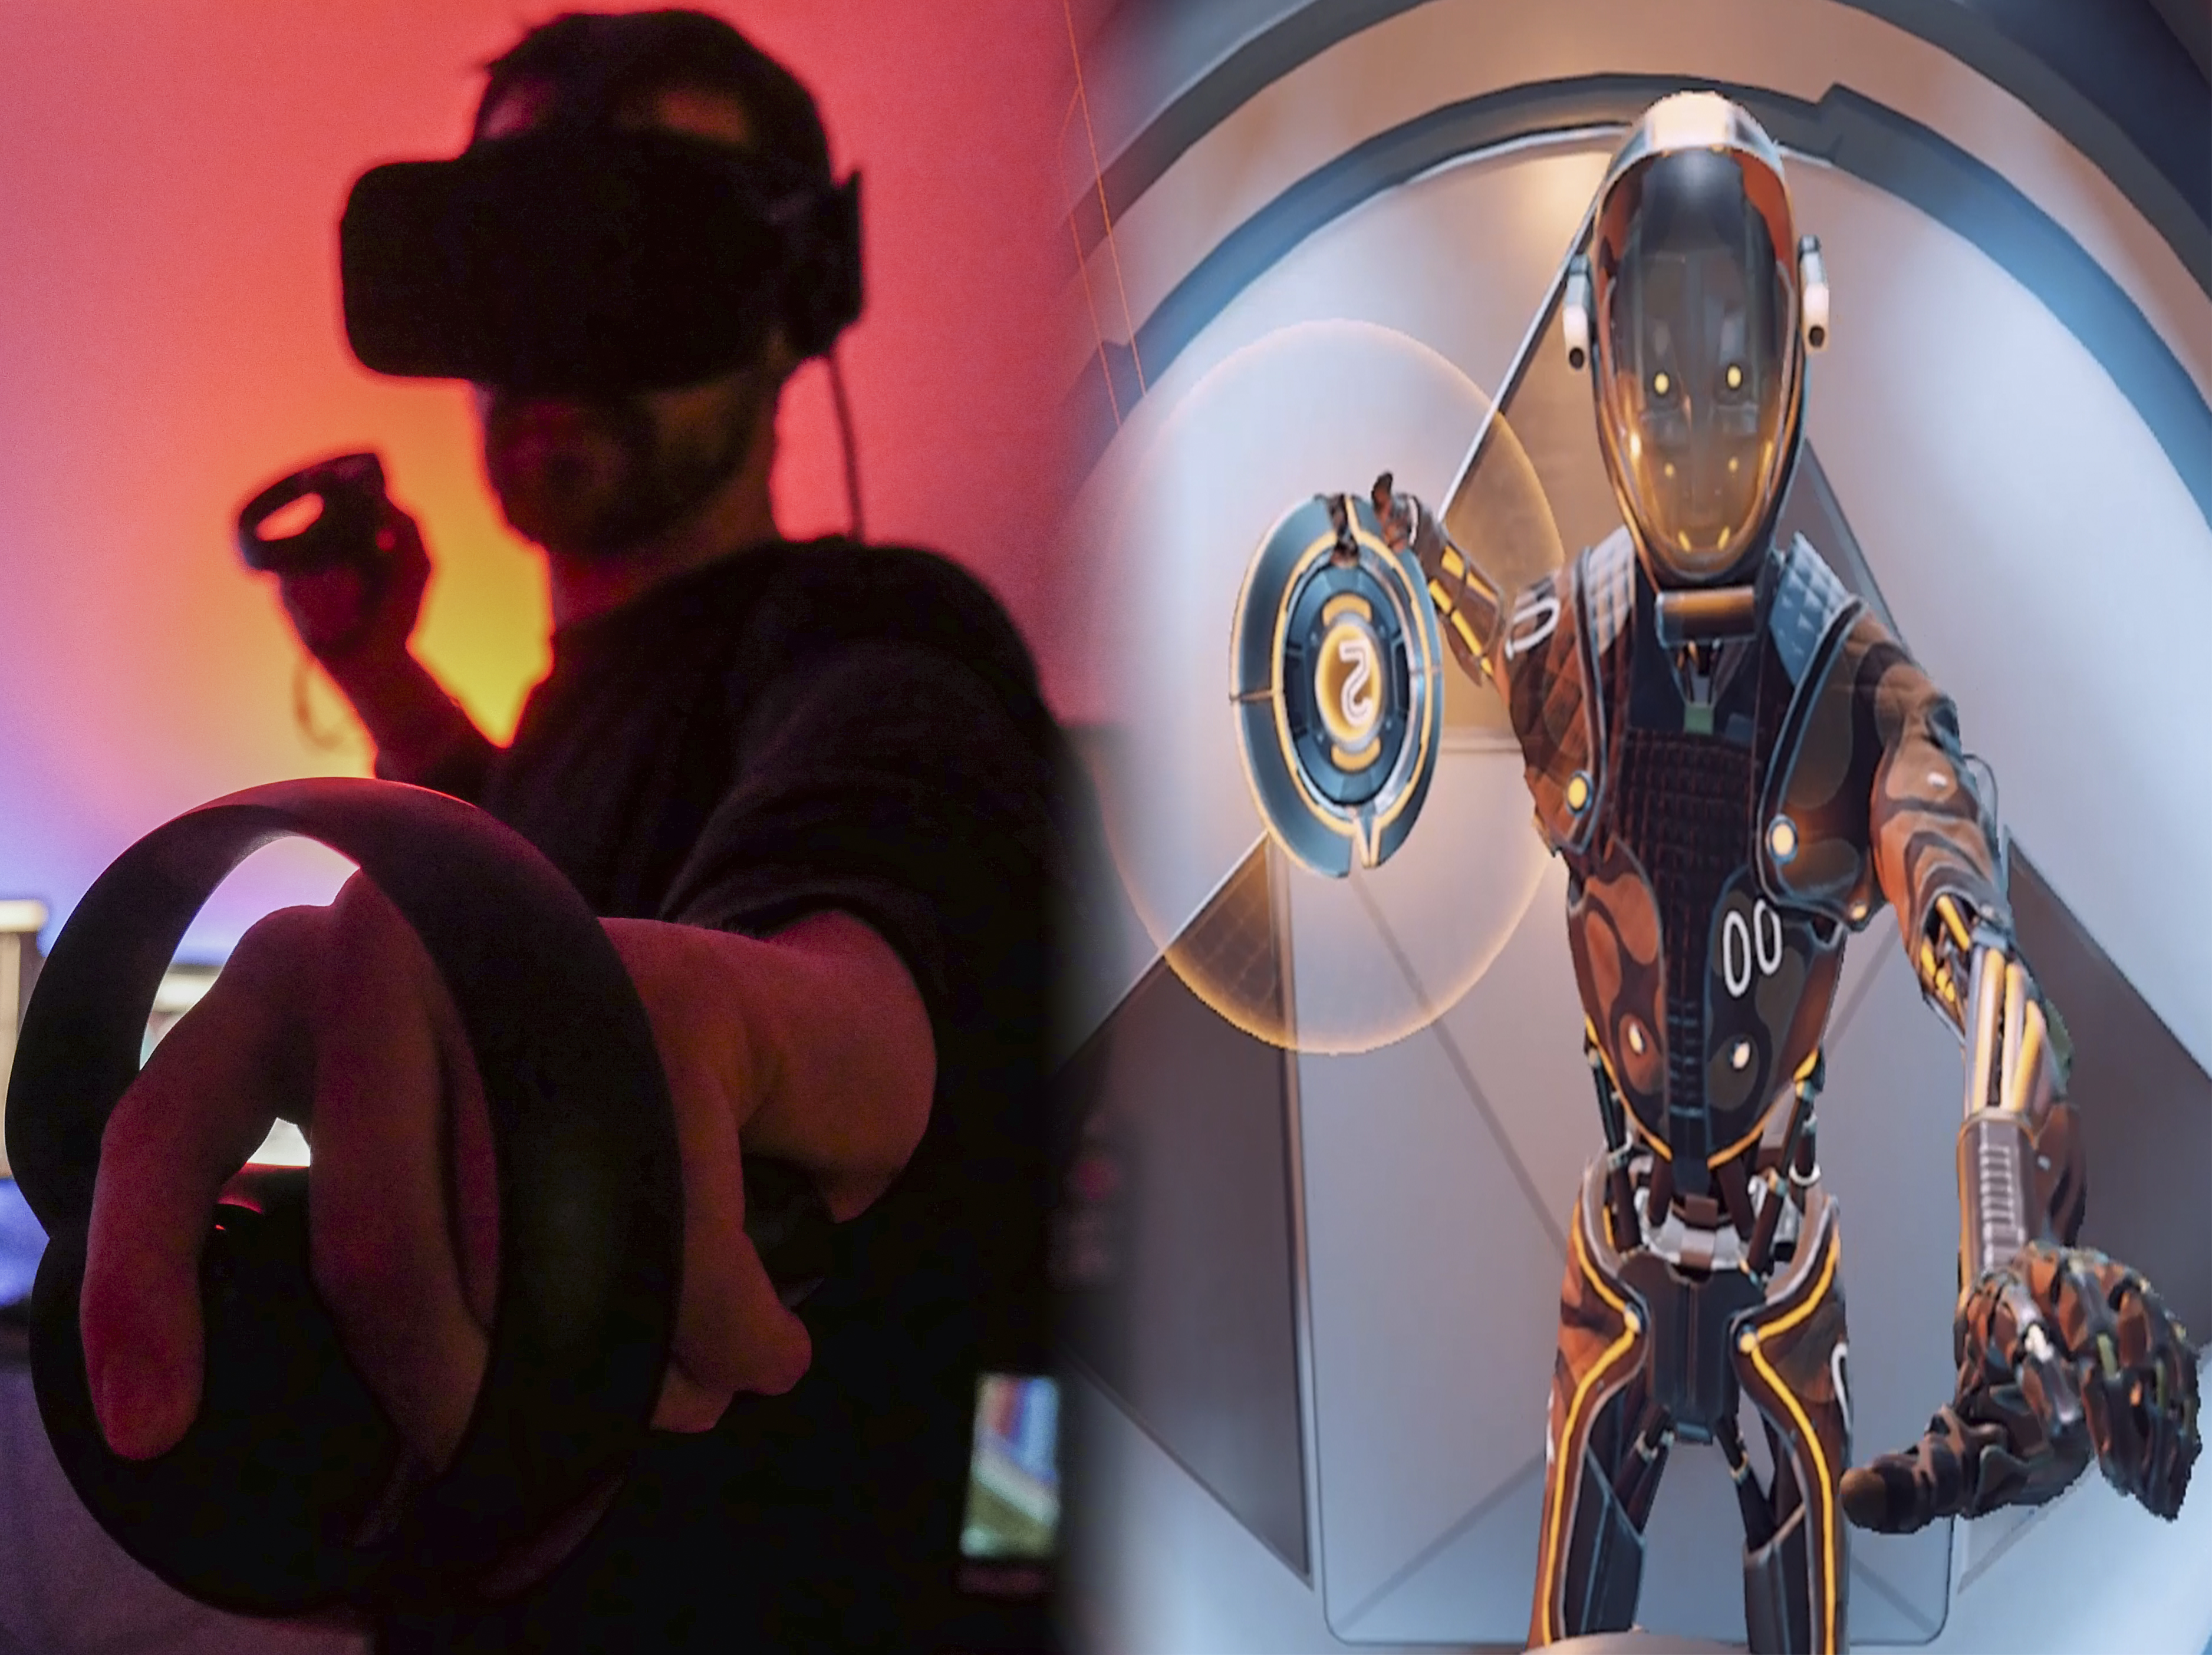 A player equipped with the Oculus Rift Virtual Reality System including controllers, sensors, and helmet (Left). An in-game capture of the player's robotic avatar inside Echo Arena (Right). Photo by Josh Diaz.